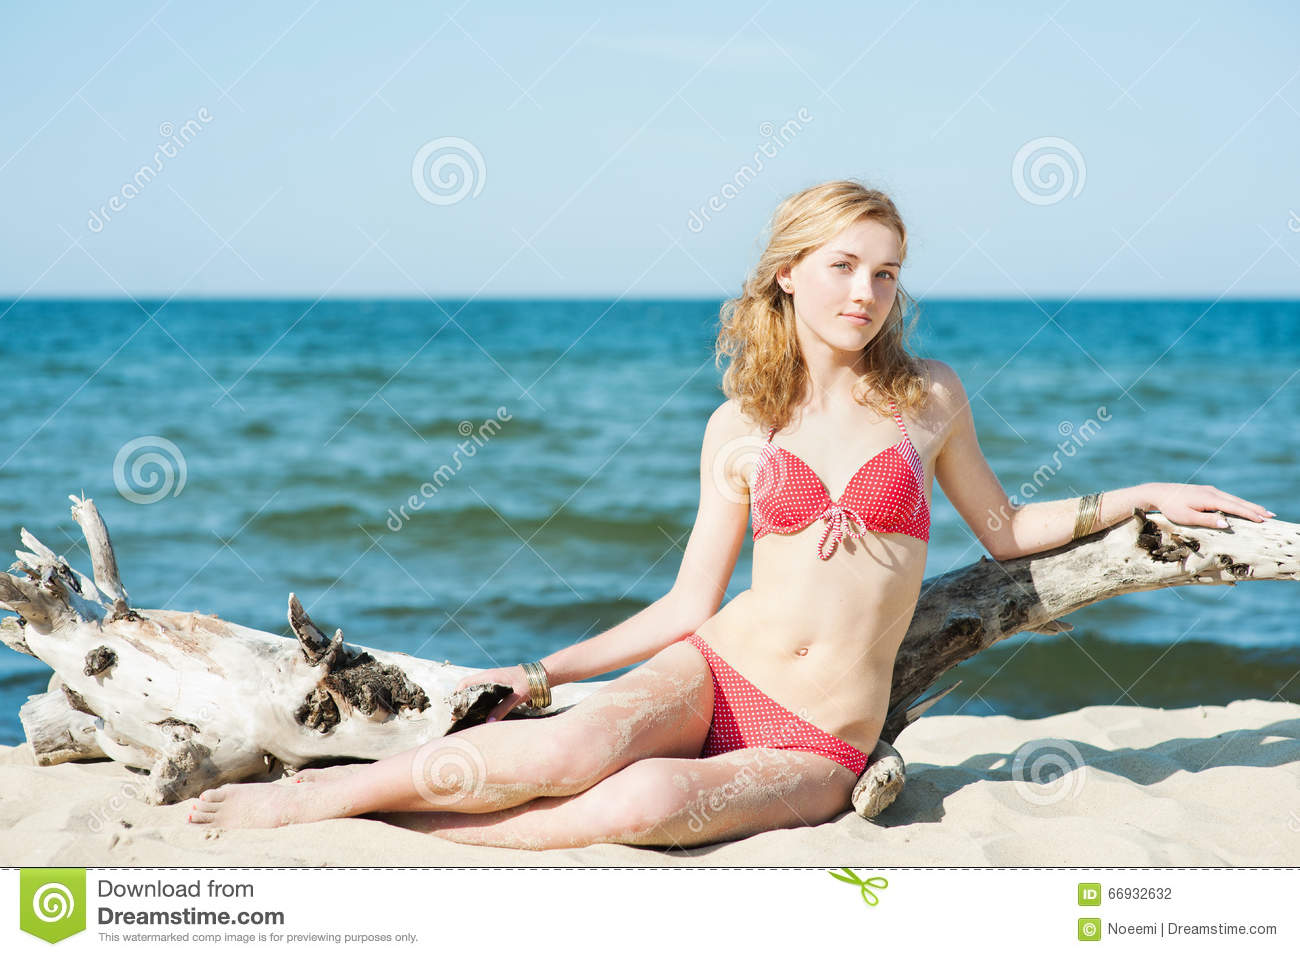 Beutiful young blond woman sunbatching on a beach